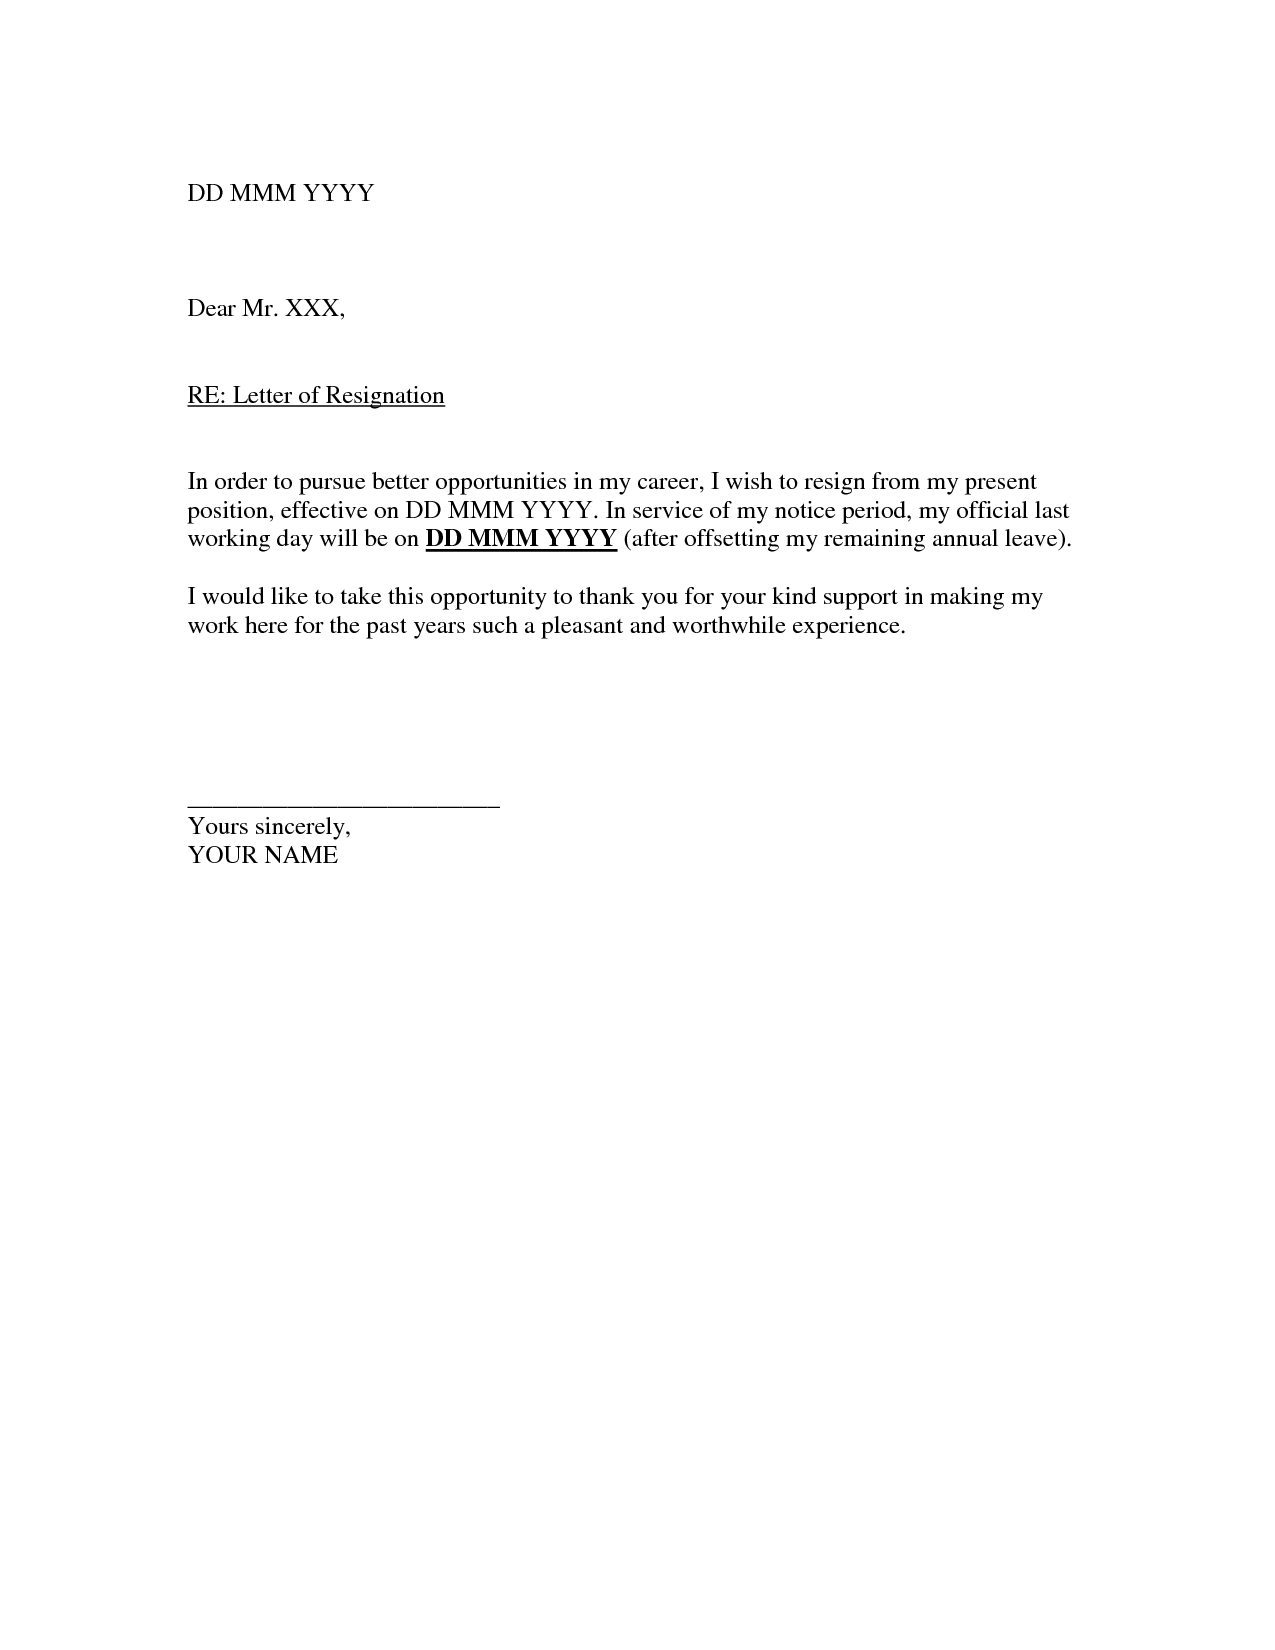 resignation letter sample blank template canre klonec co